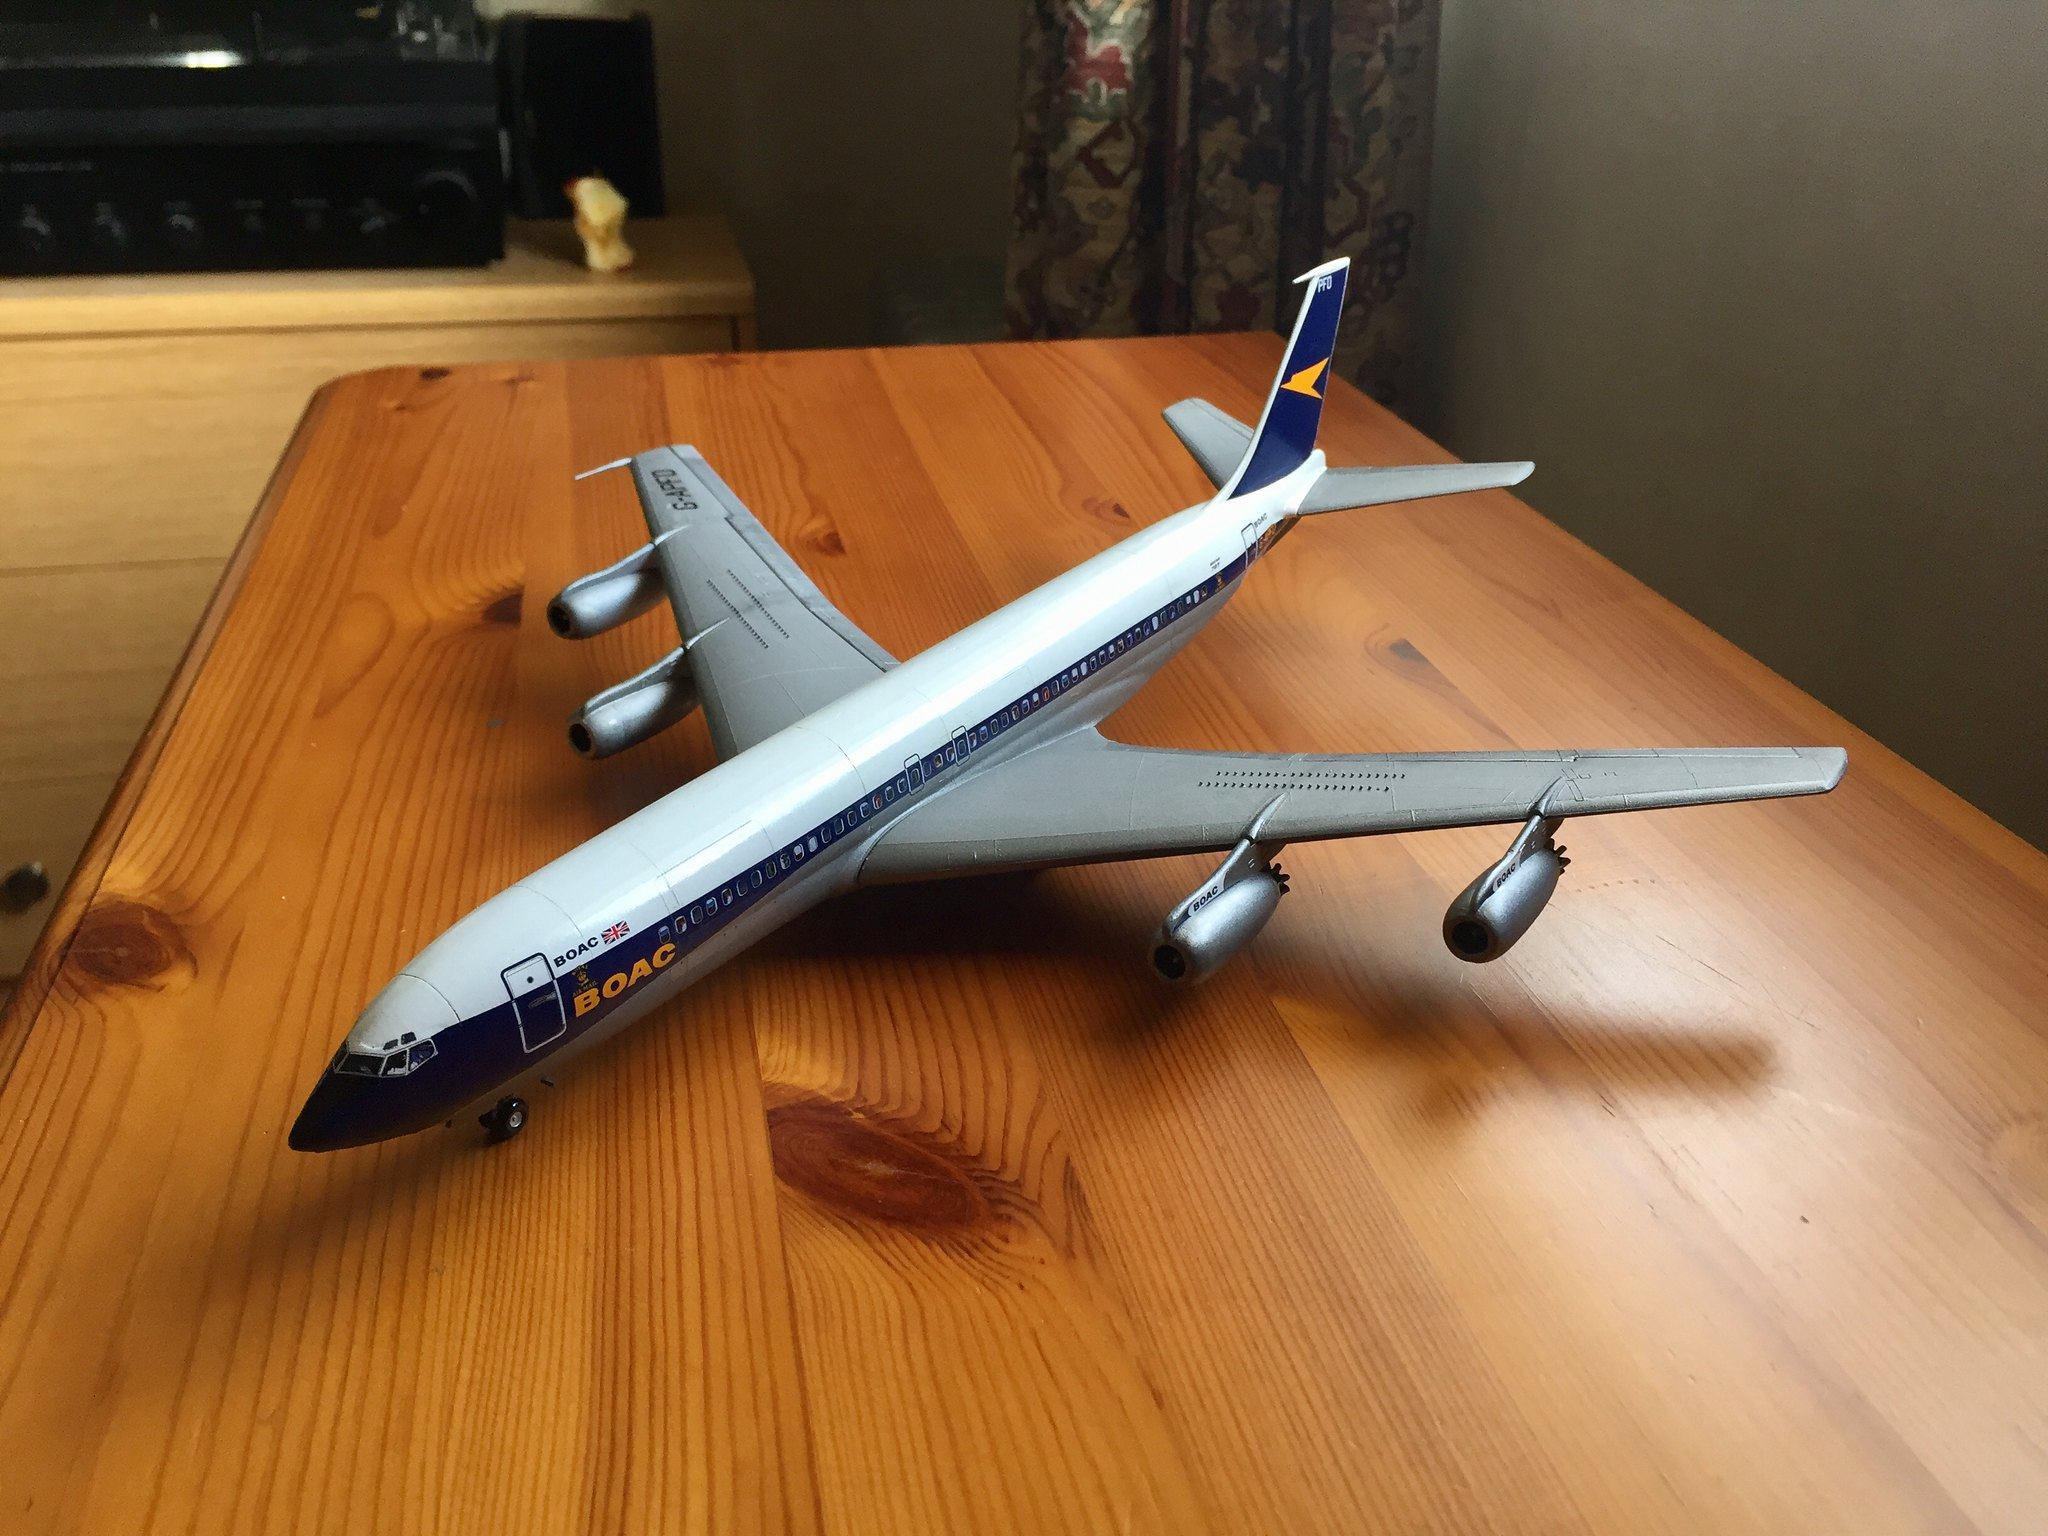 BOAC 707 - Airfix kit with Authentic Airliners decals - Ready for